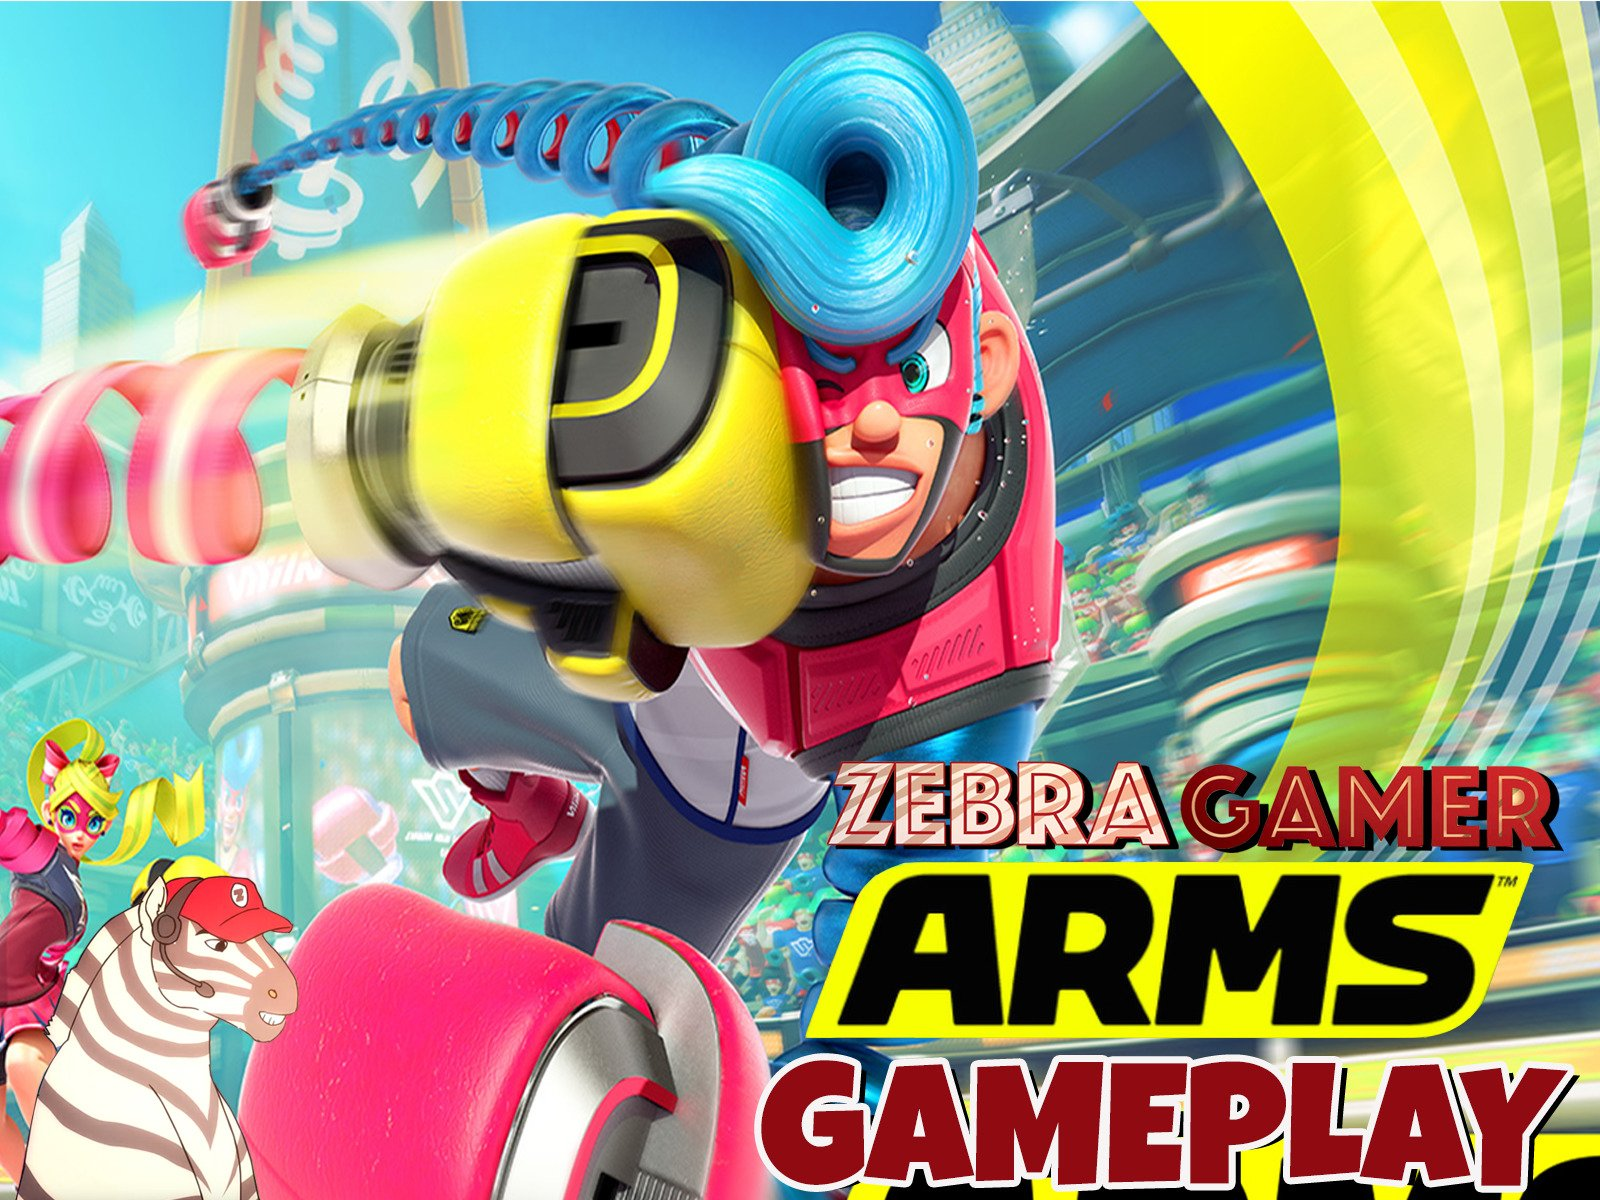 Arms Gameplay - Season 1